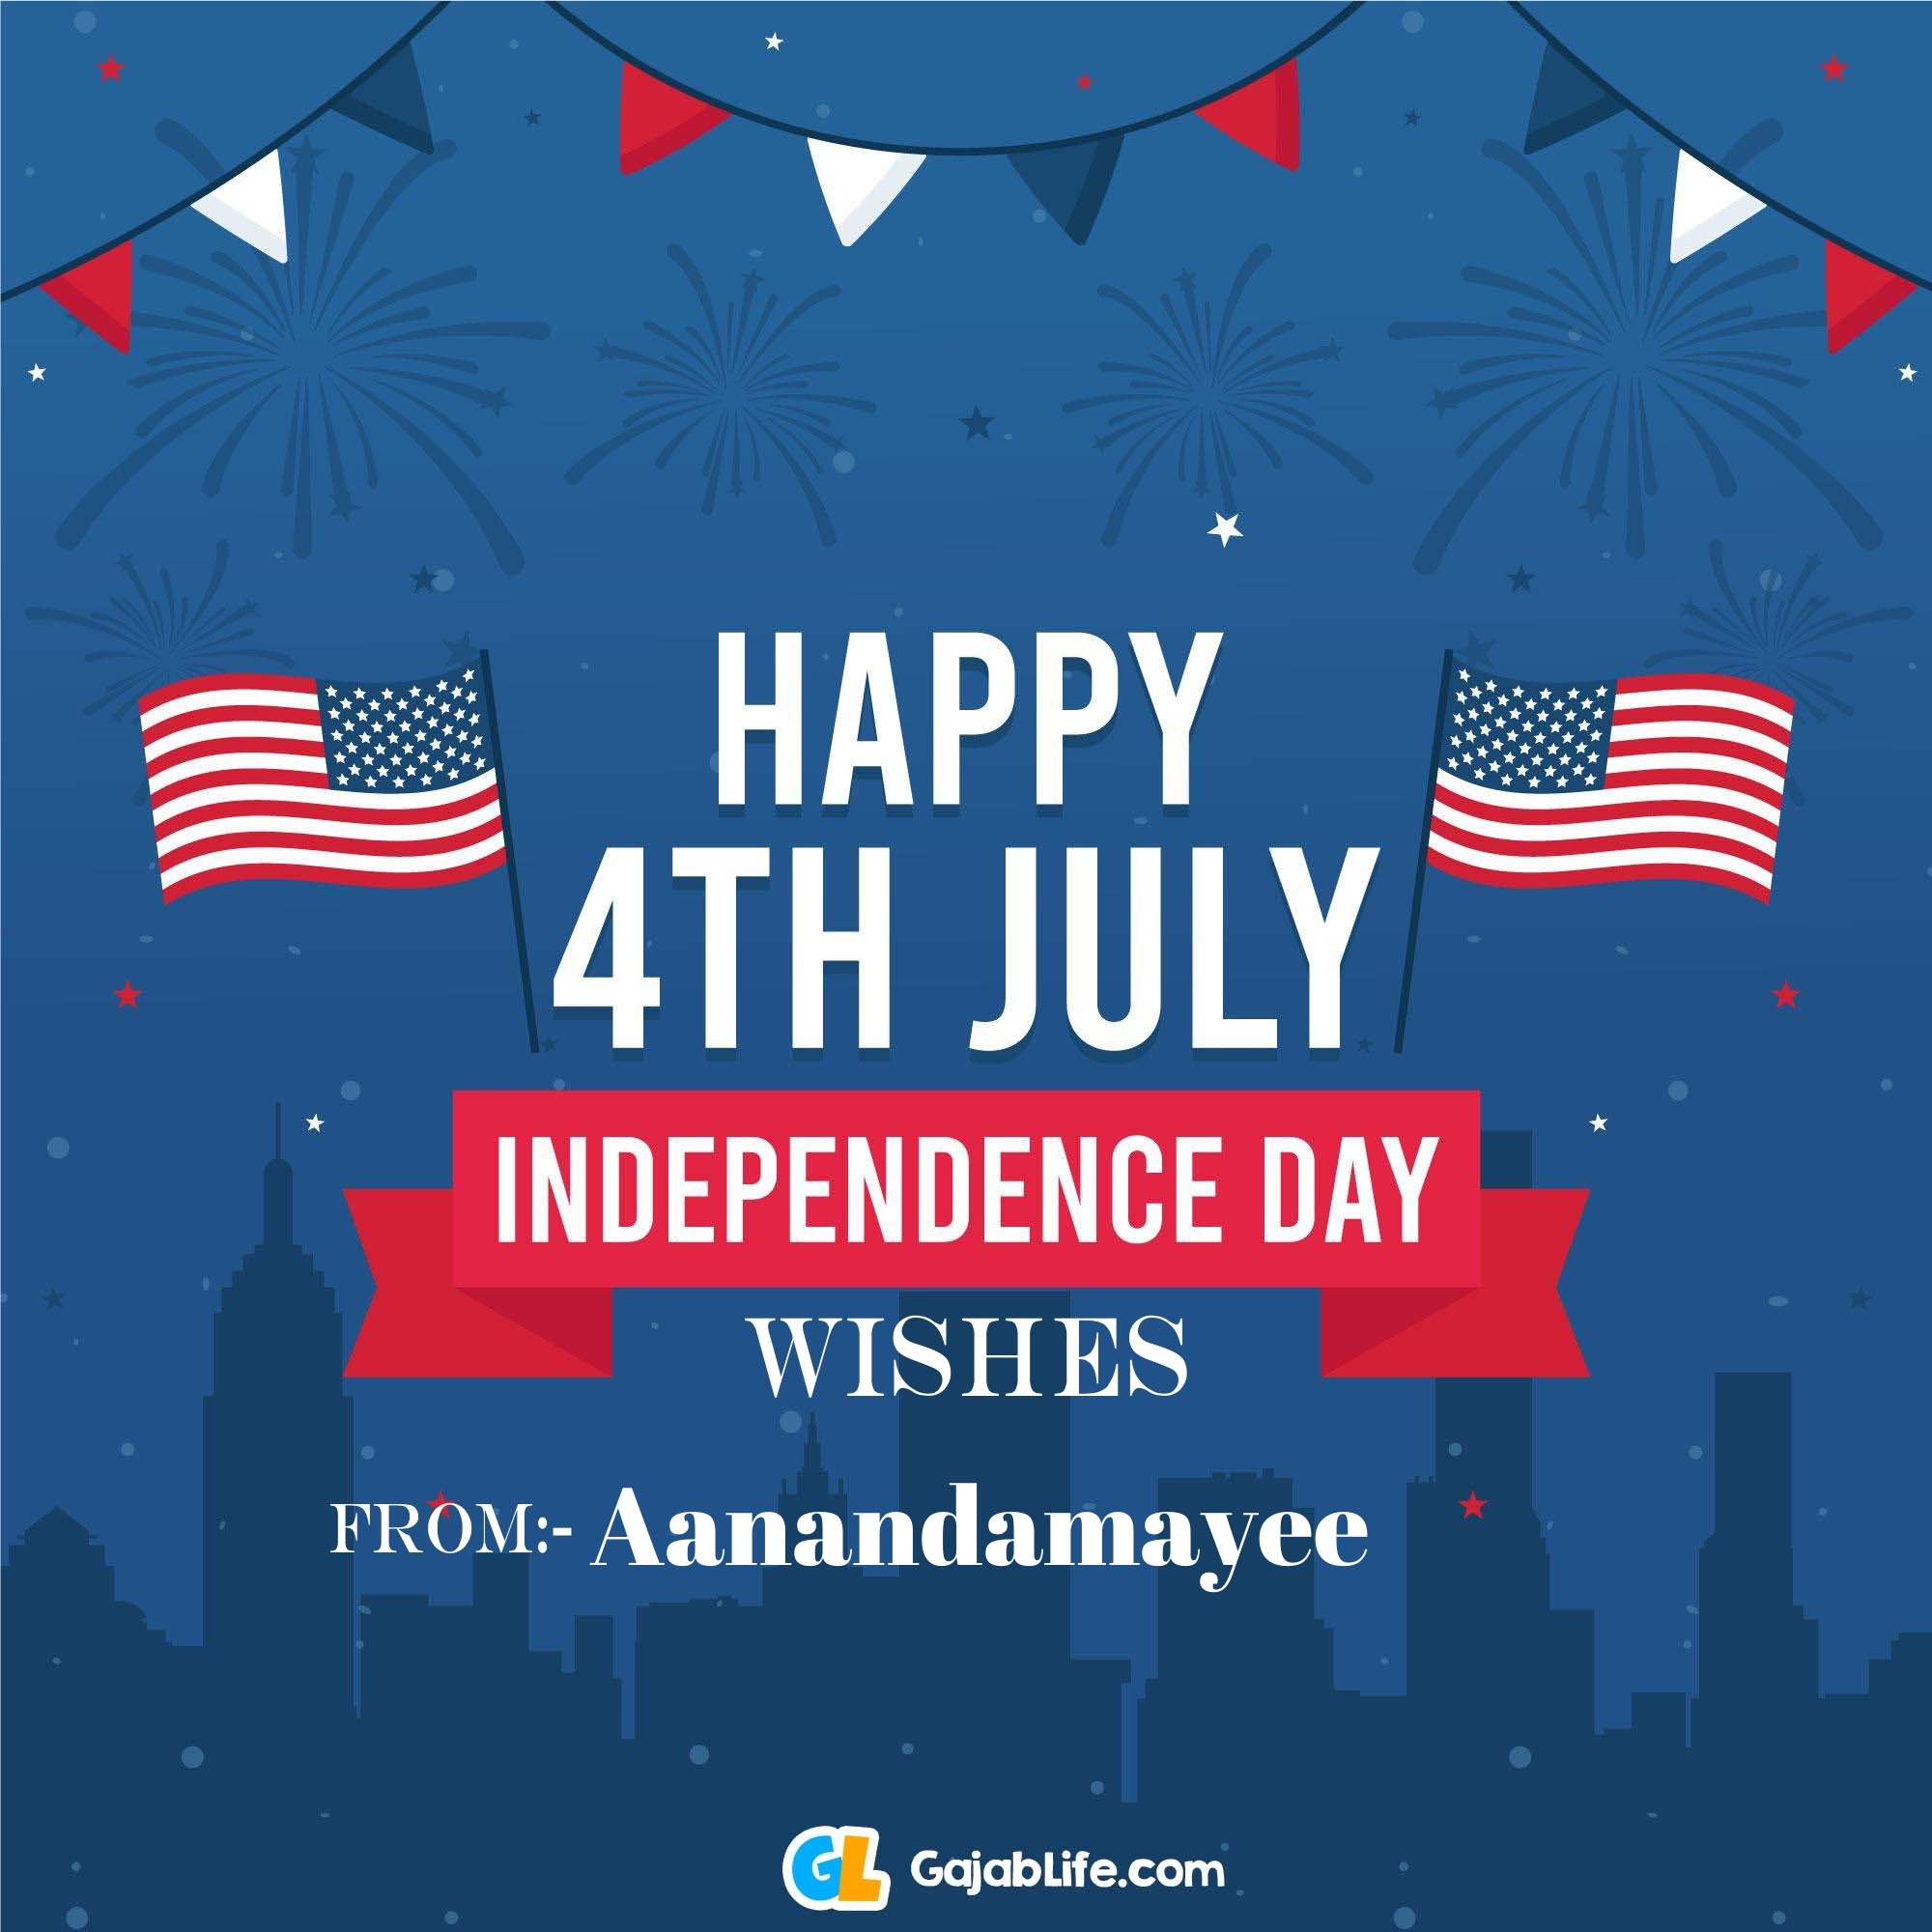 Aanandamayee happy independence day united states of america images